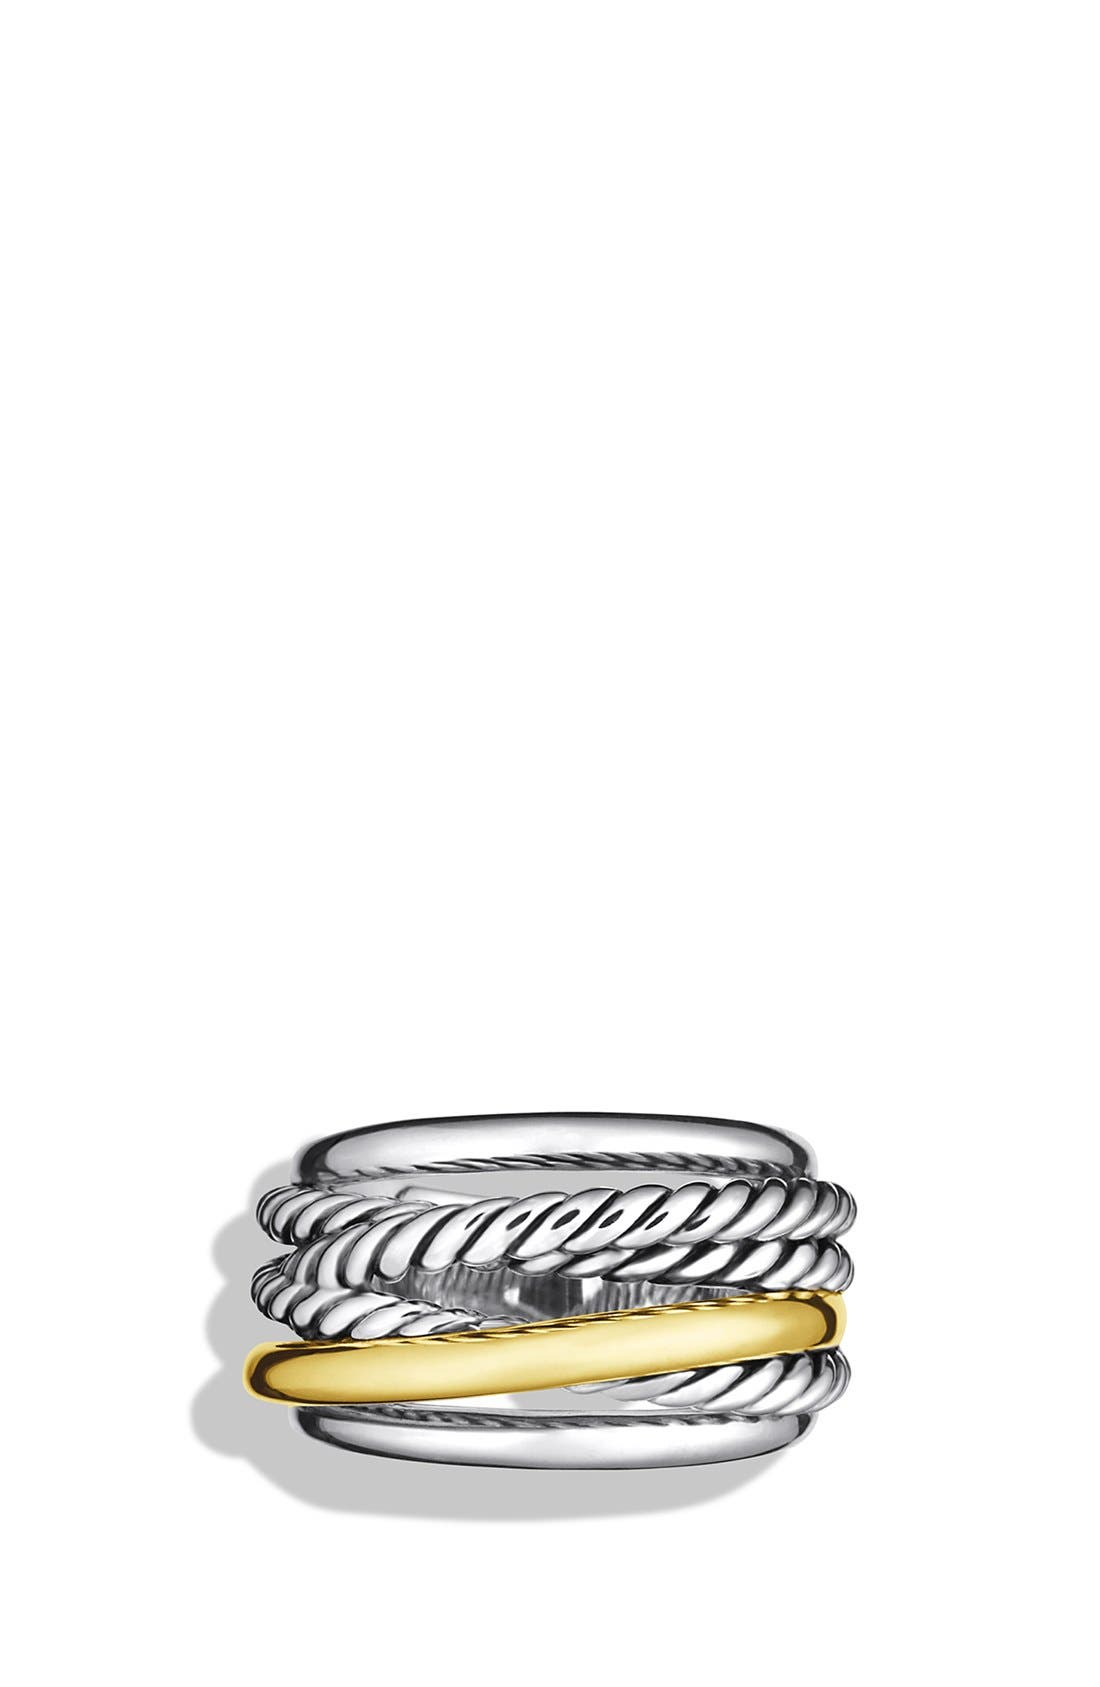 'Crossover' Narrow Ring with Gold,                             Alternate thumbnail 2, color,                             STERLING SILVER/ 14K GOLD